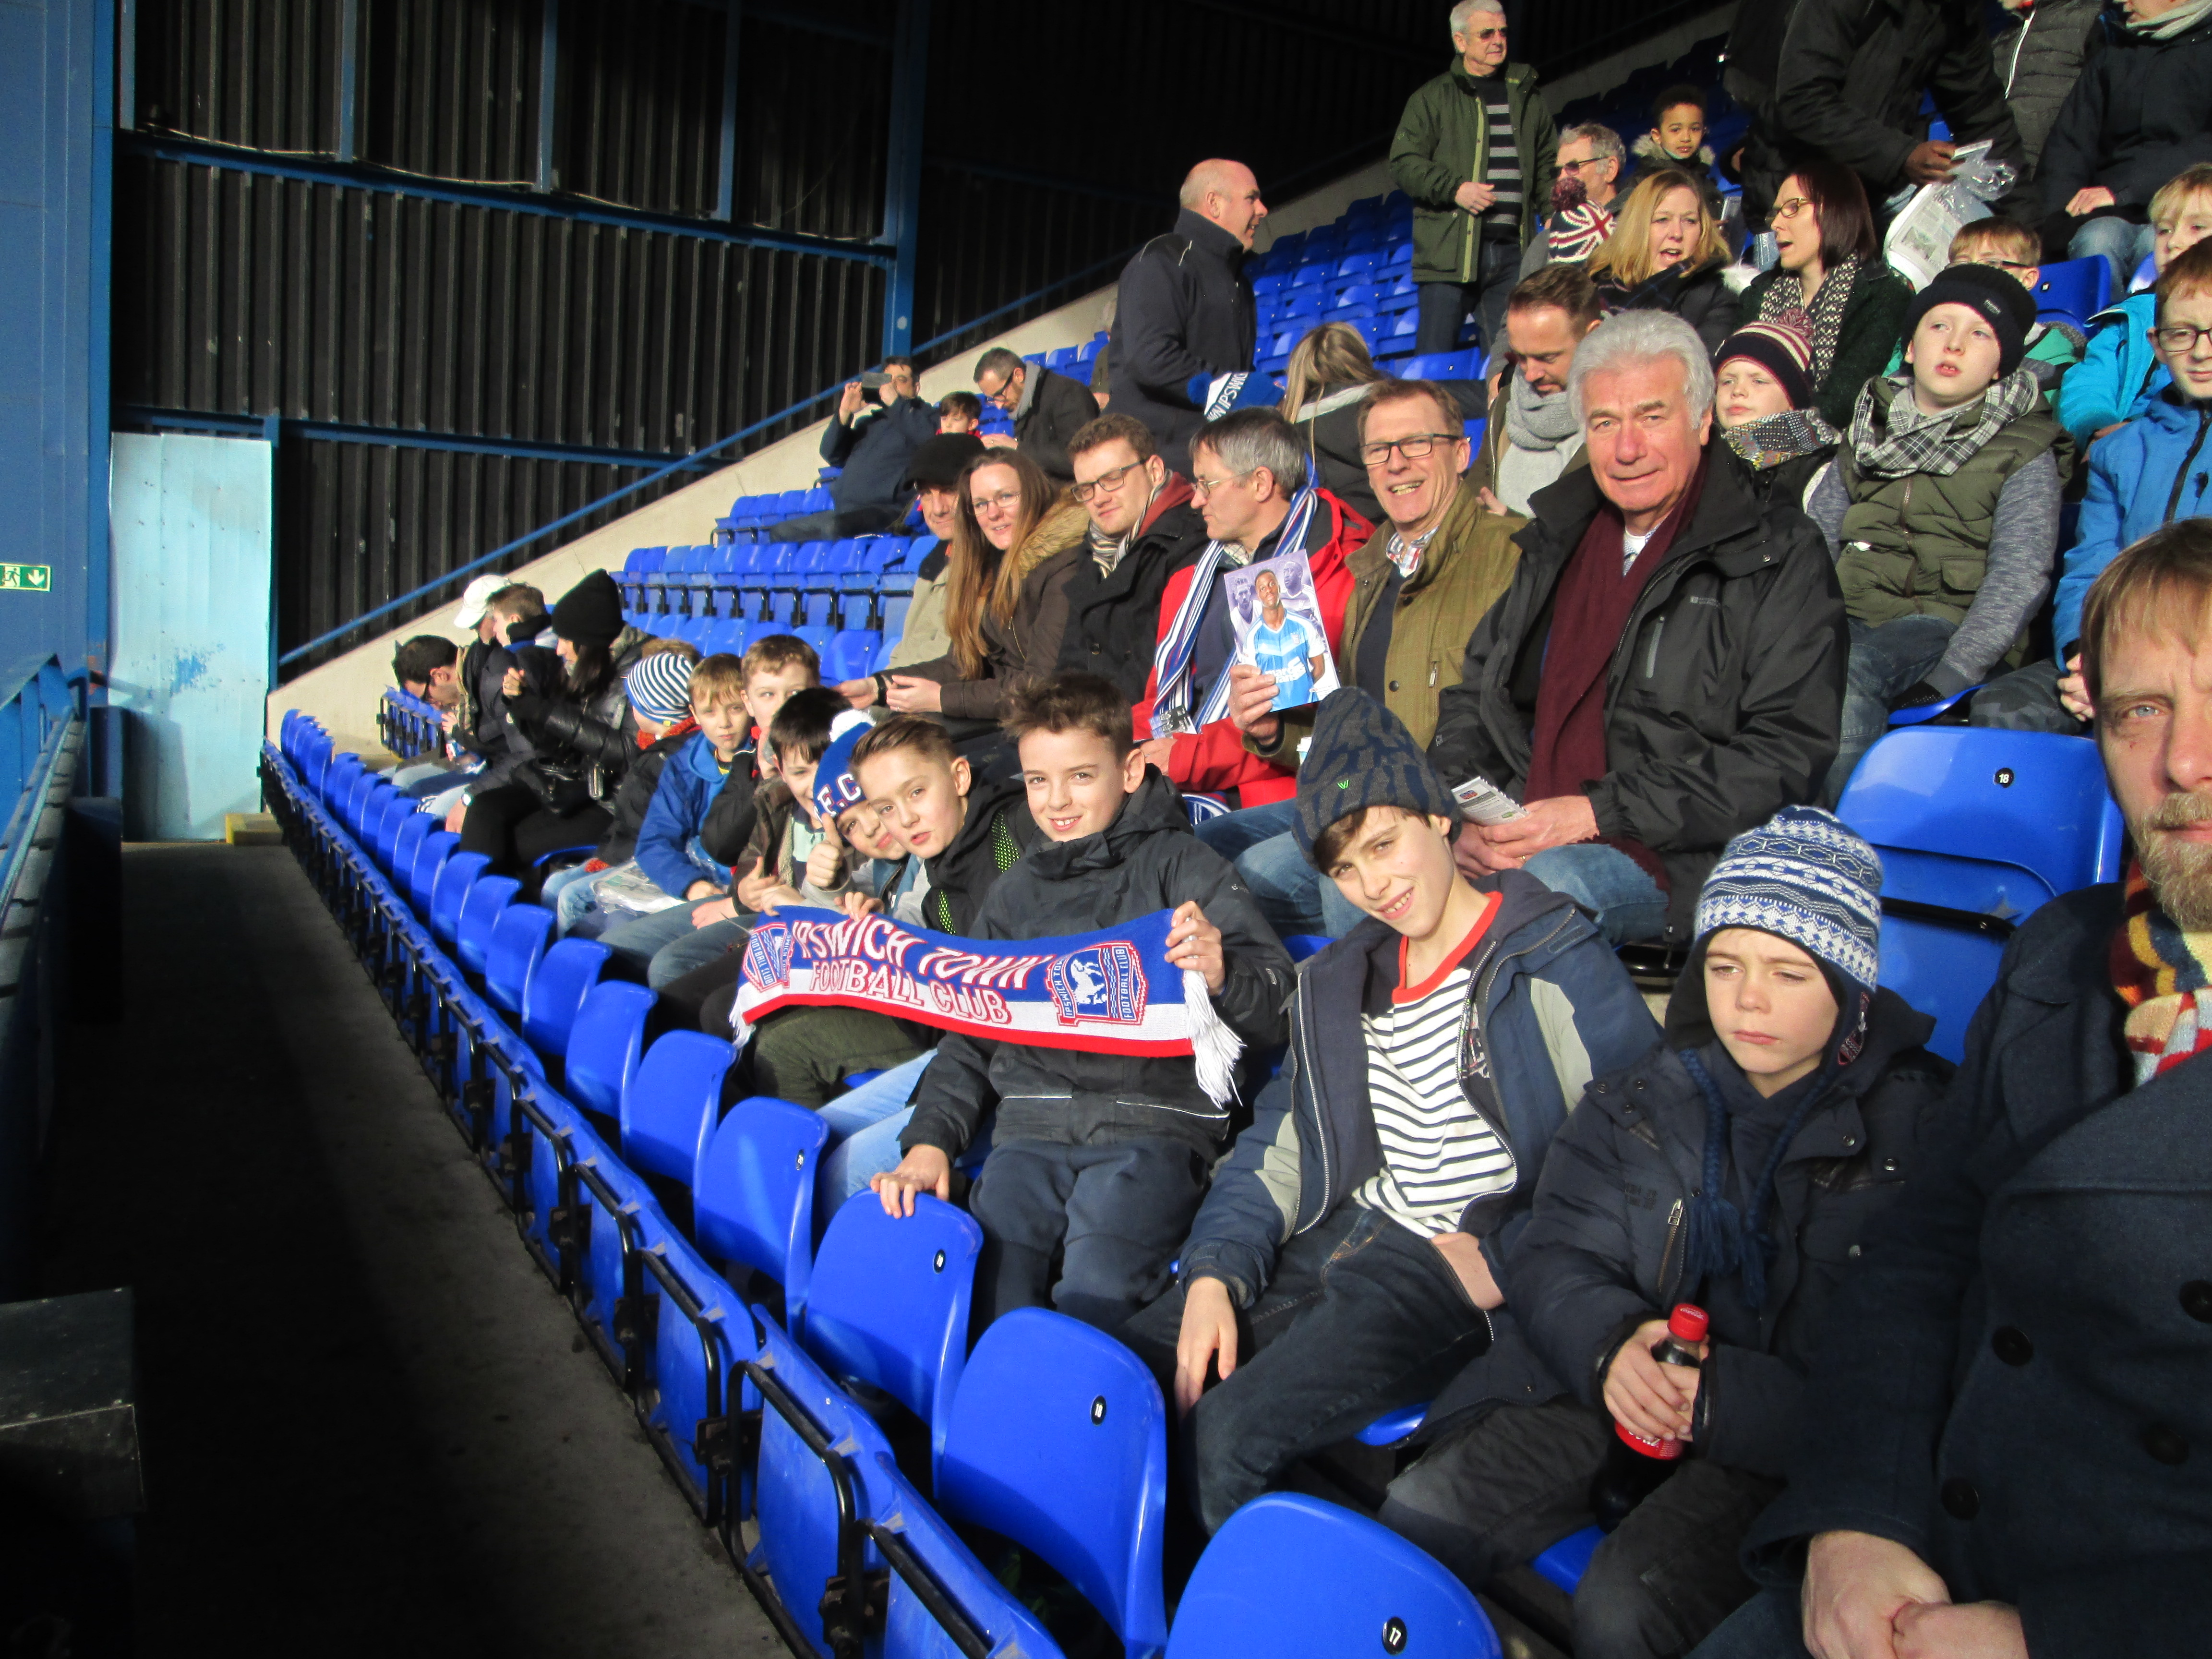 Group visit to Ipswich Town Football Club 2017